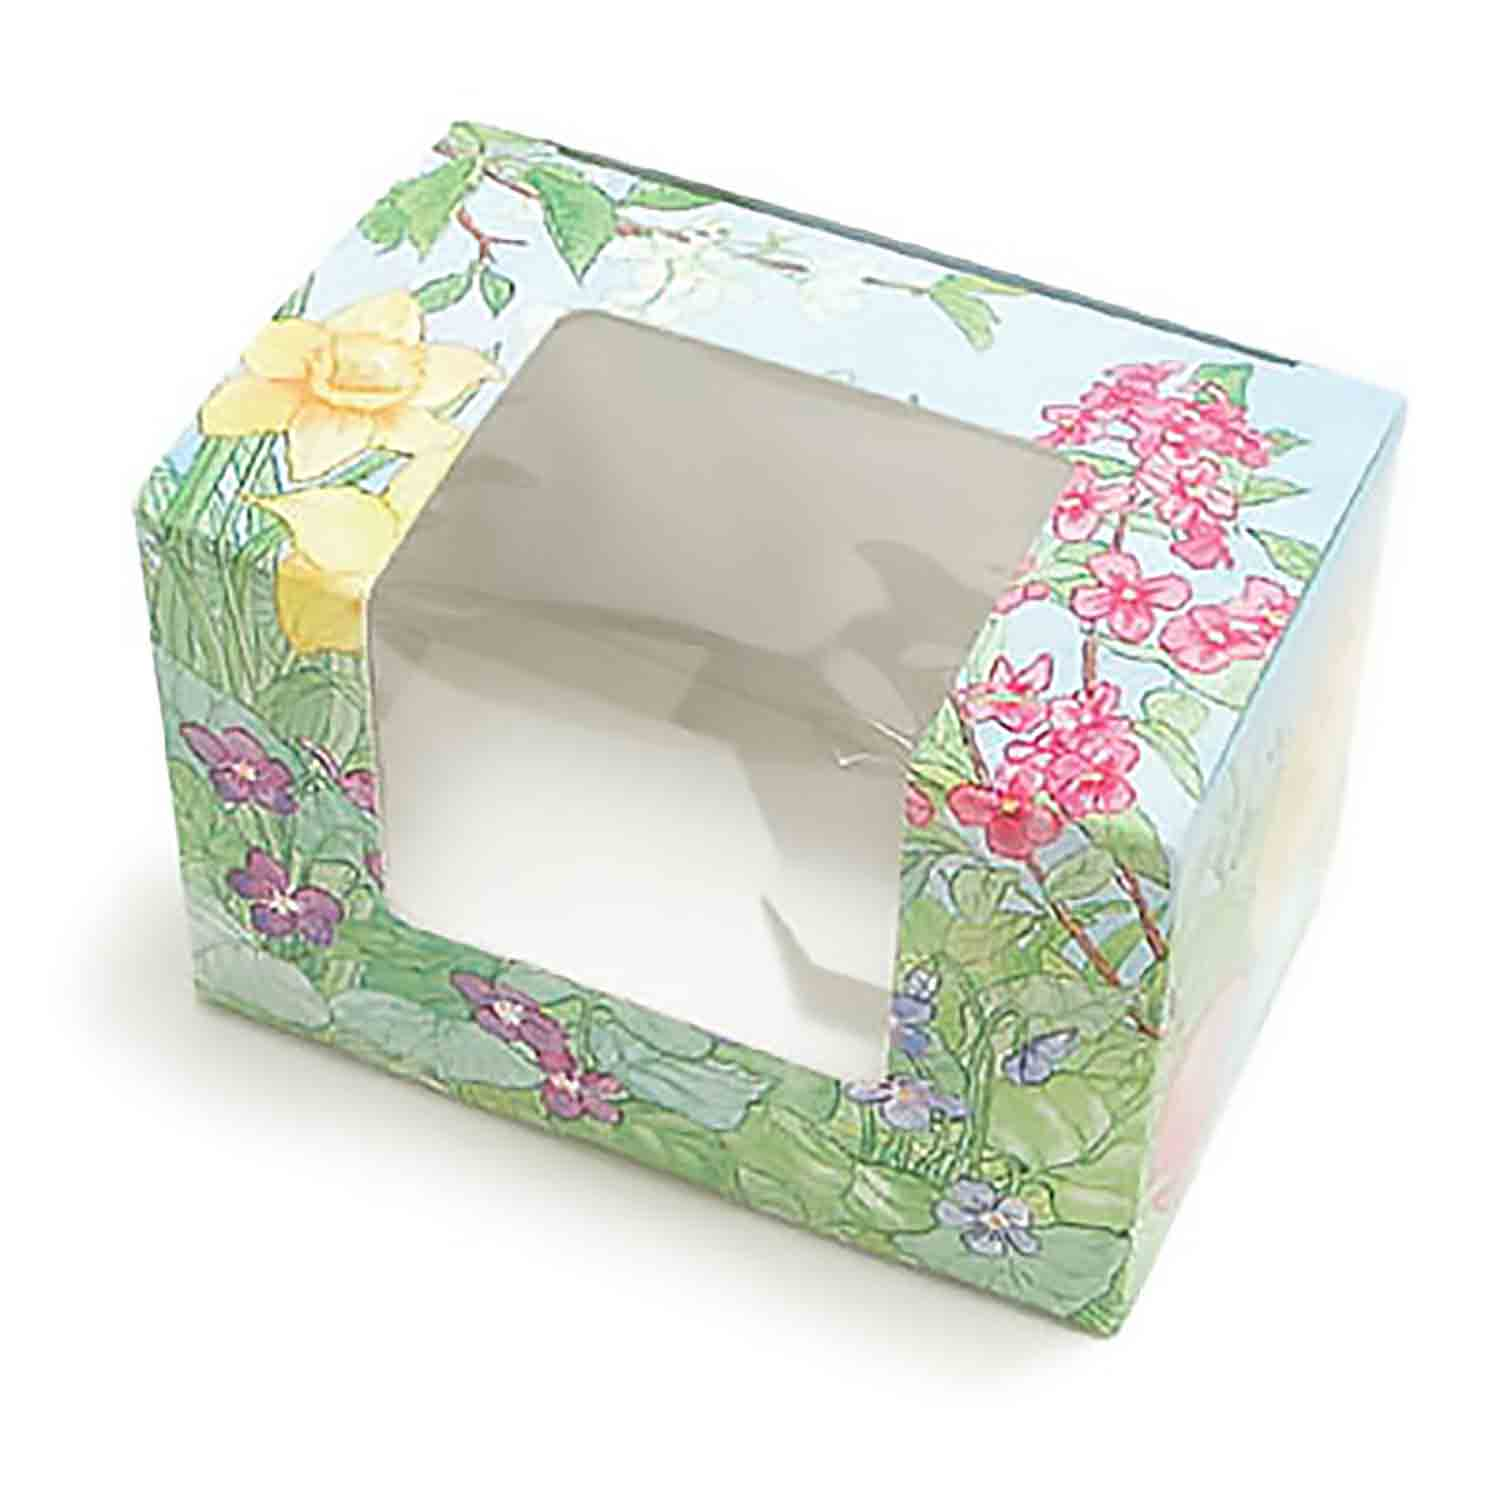 1 lb. Easter Garden Egg Candy Box with Window